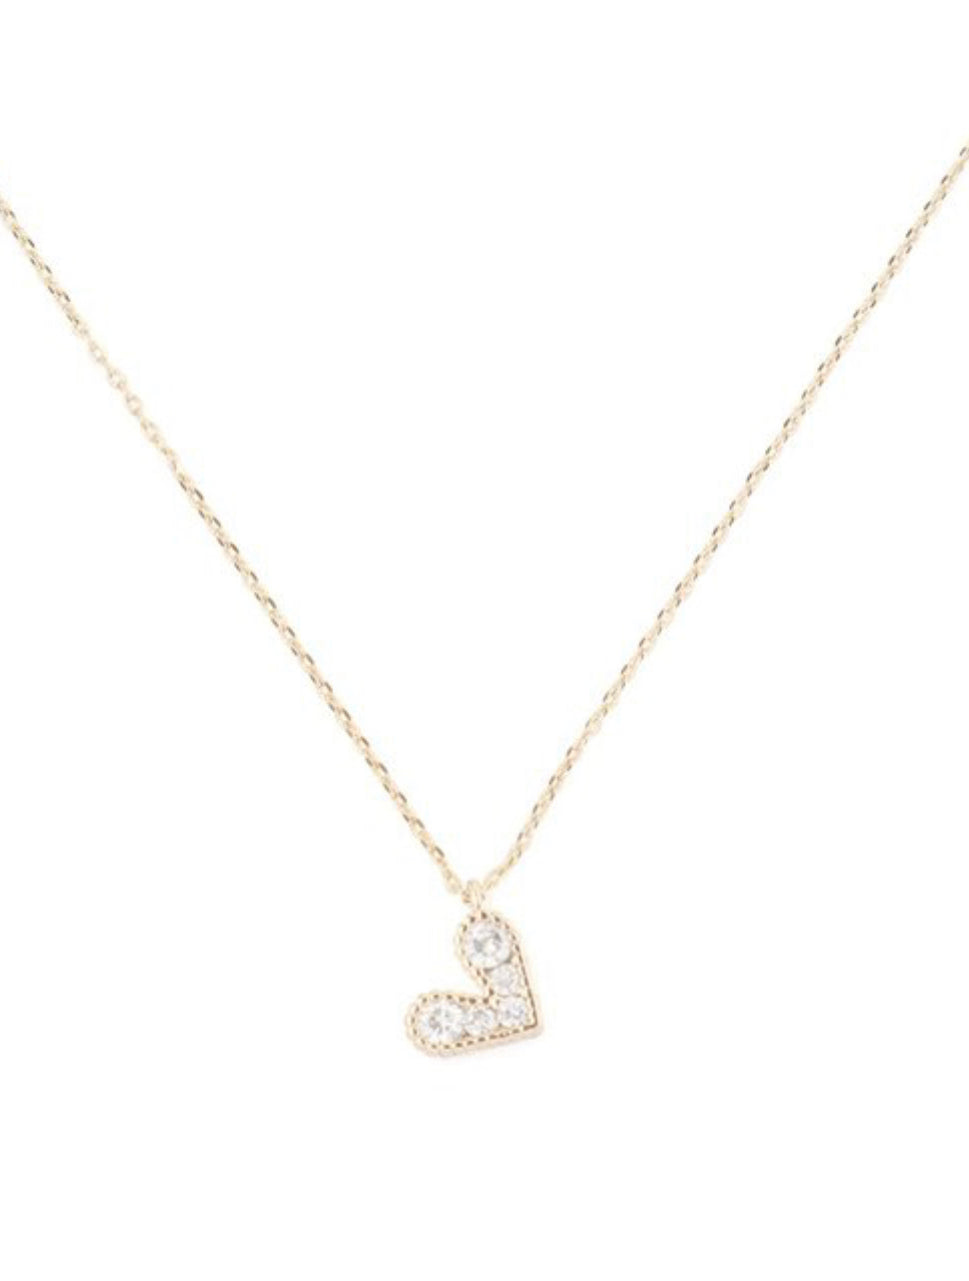 Gold heart necklace, Mama